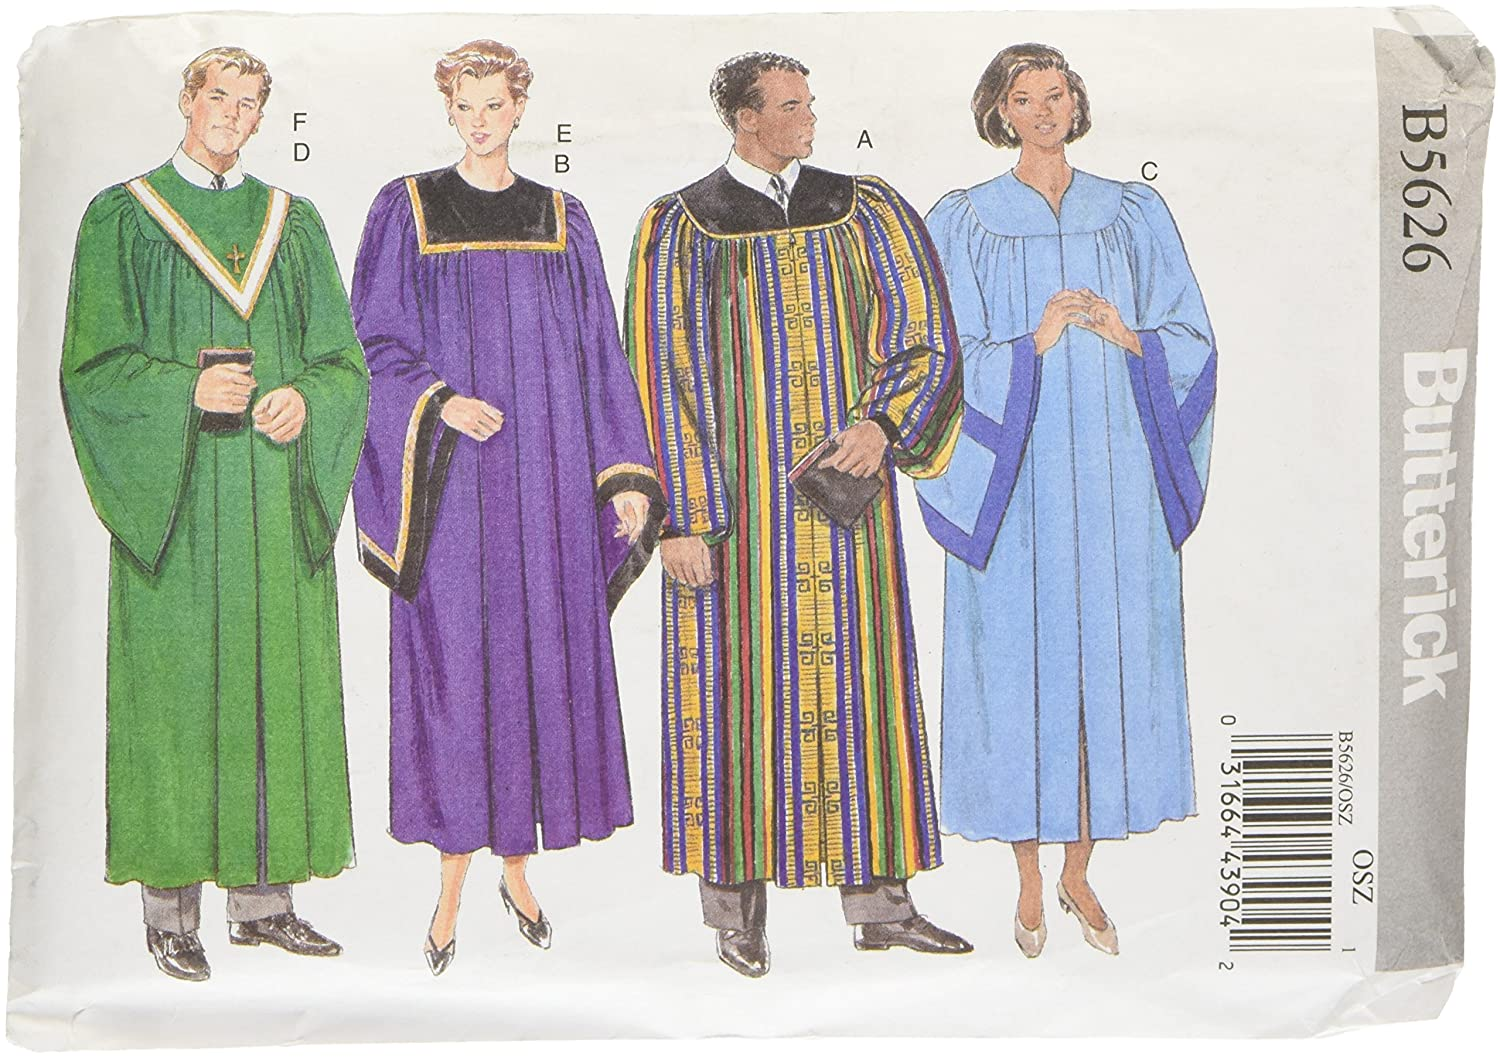 Amazon butterick patterns b5626 unisex robe and collar all sizes jeuxipadfo Gallery